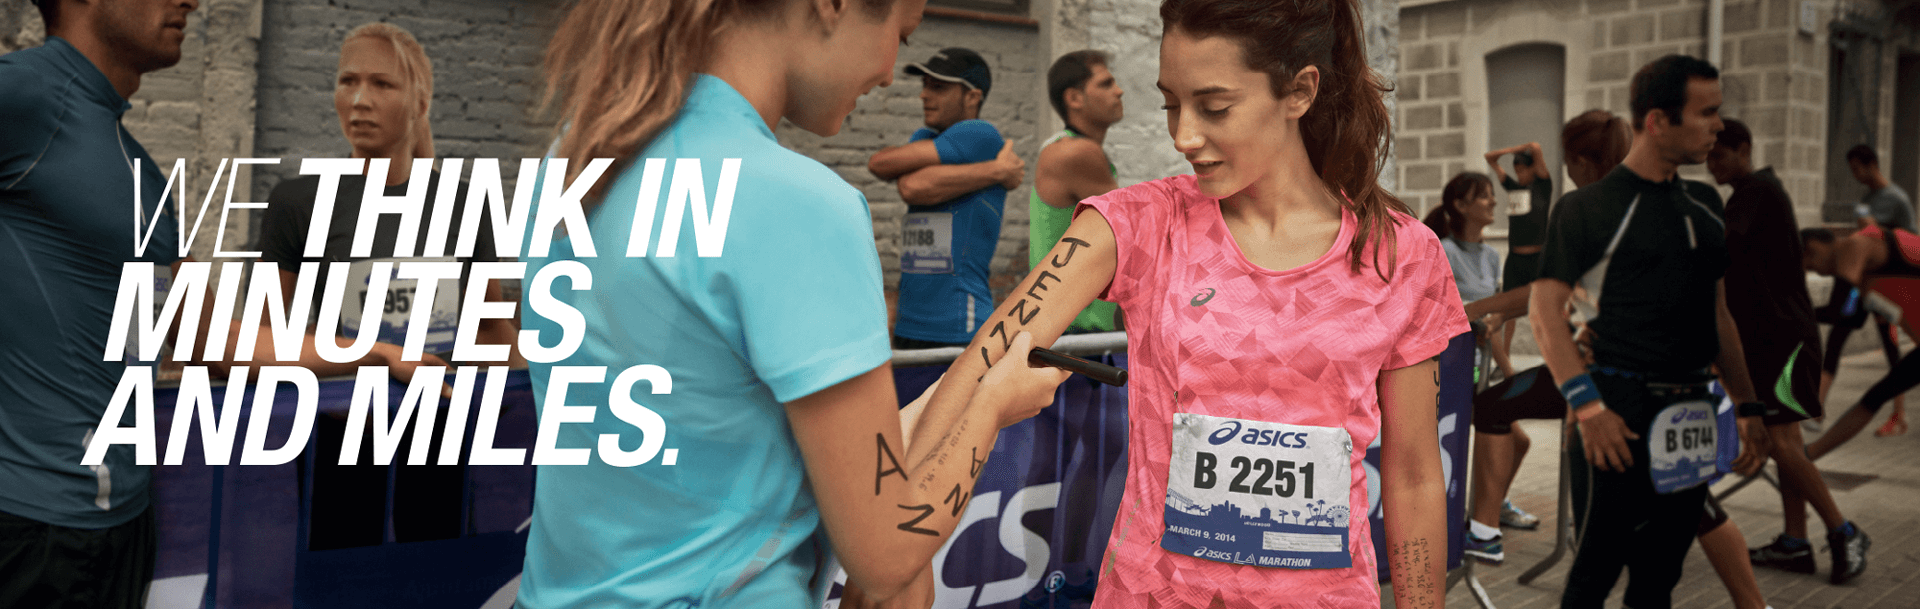 ASICS banner image featuring two female runners